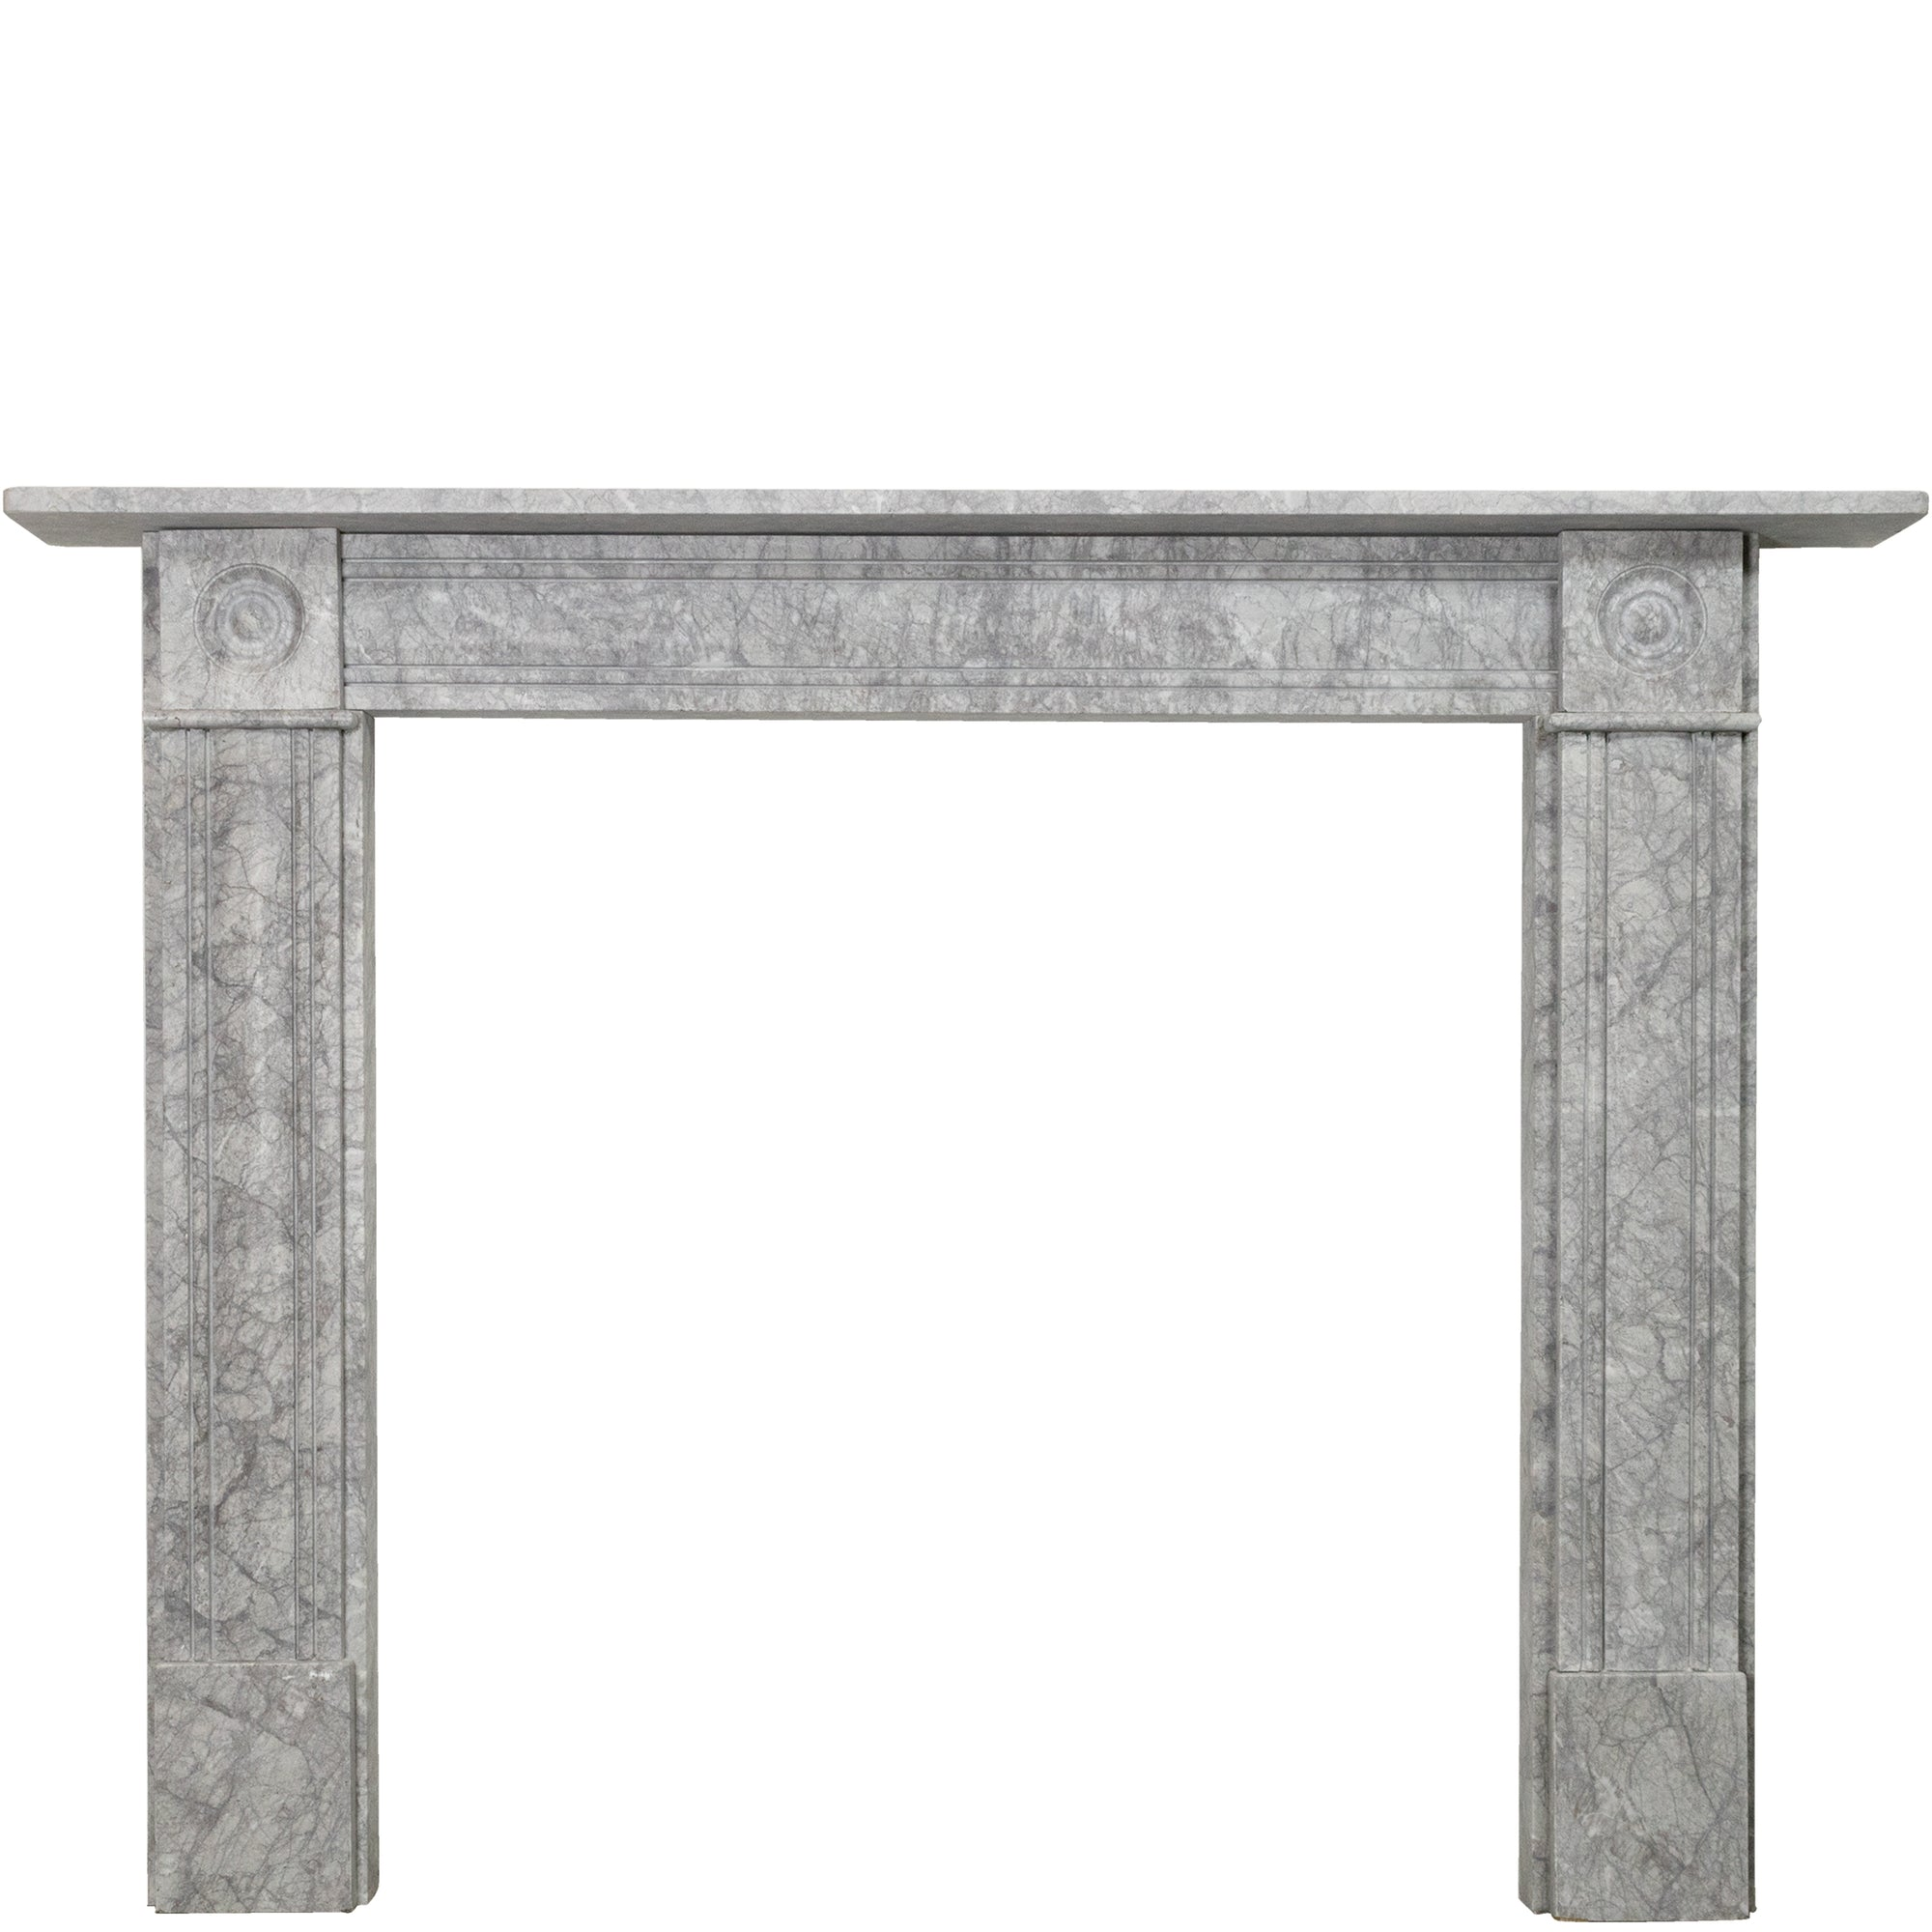 Georgian Style Bullseye Grey Marble Fireplace Surround